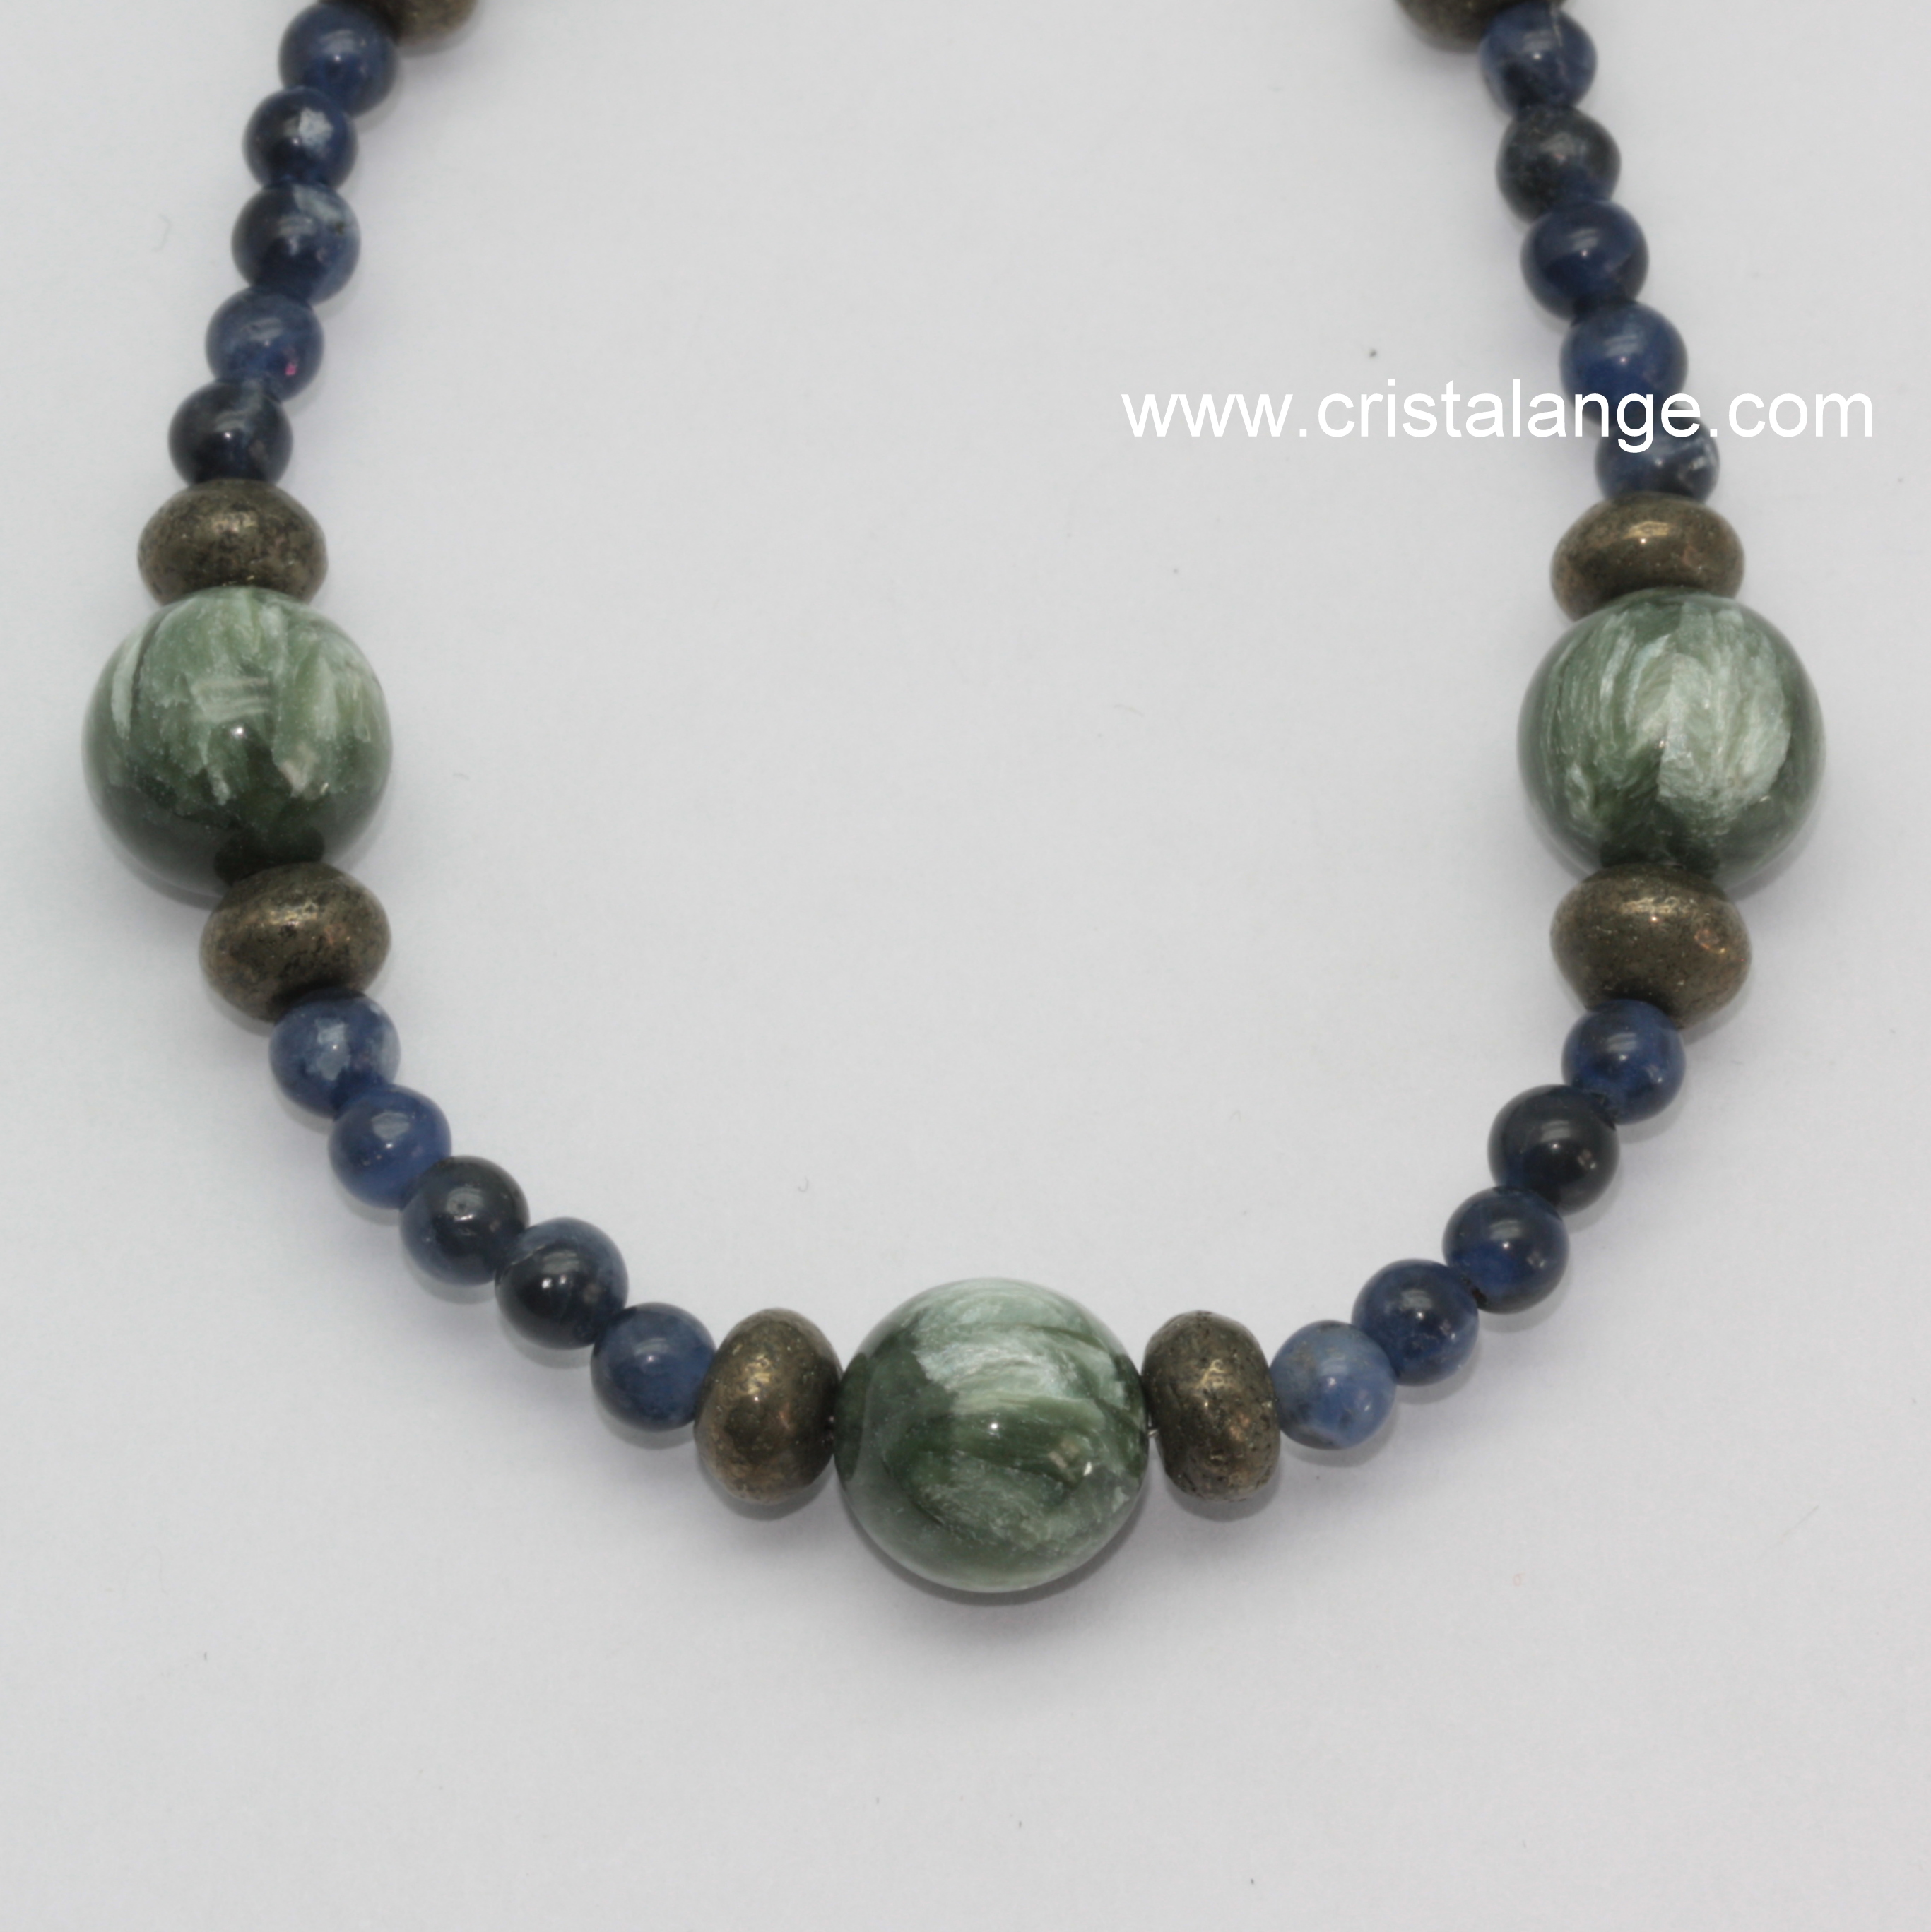 infinity designs ambrosia necklace products headbands zoom image inspired elements co by sodalite blue